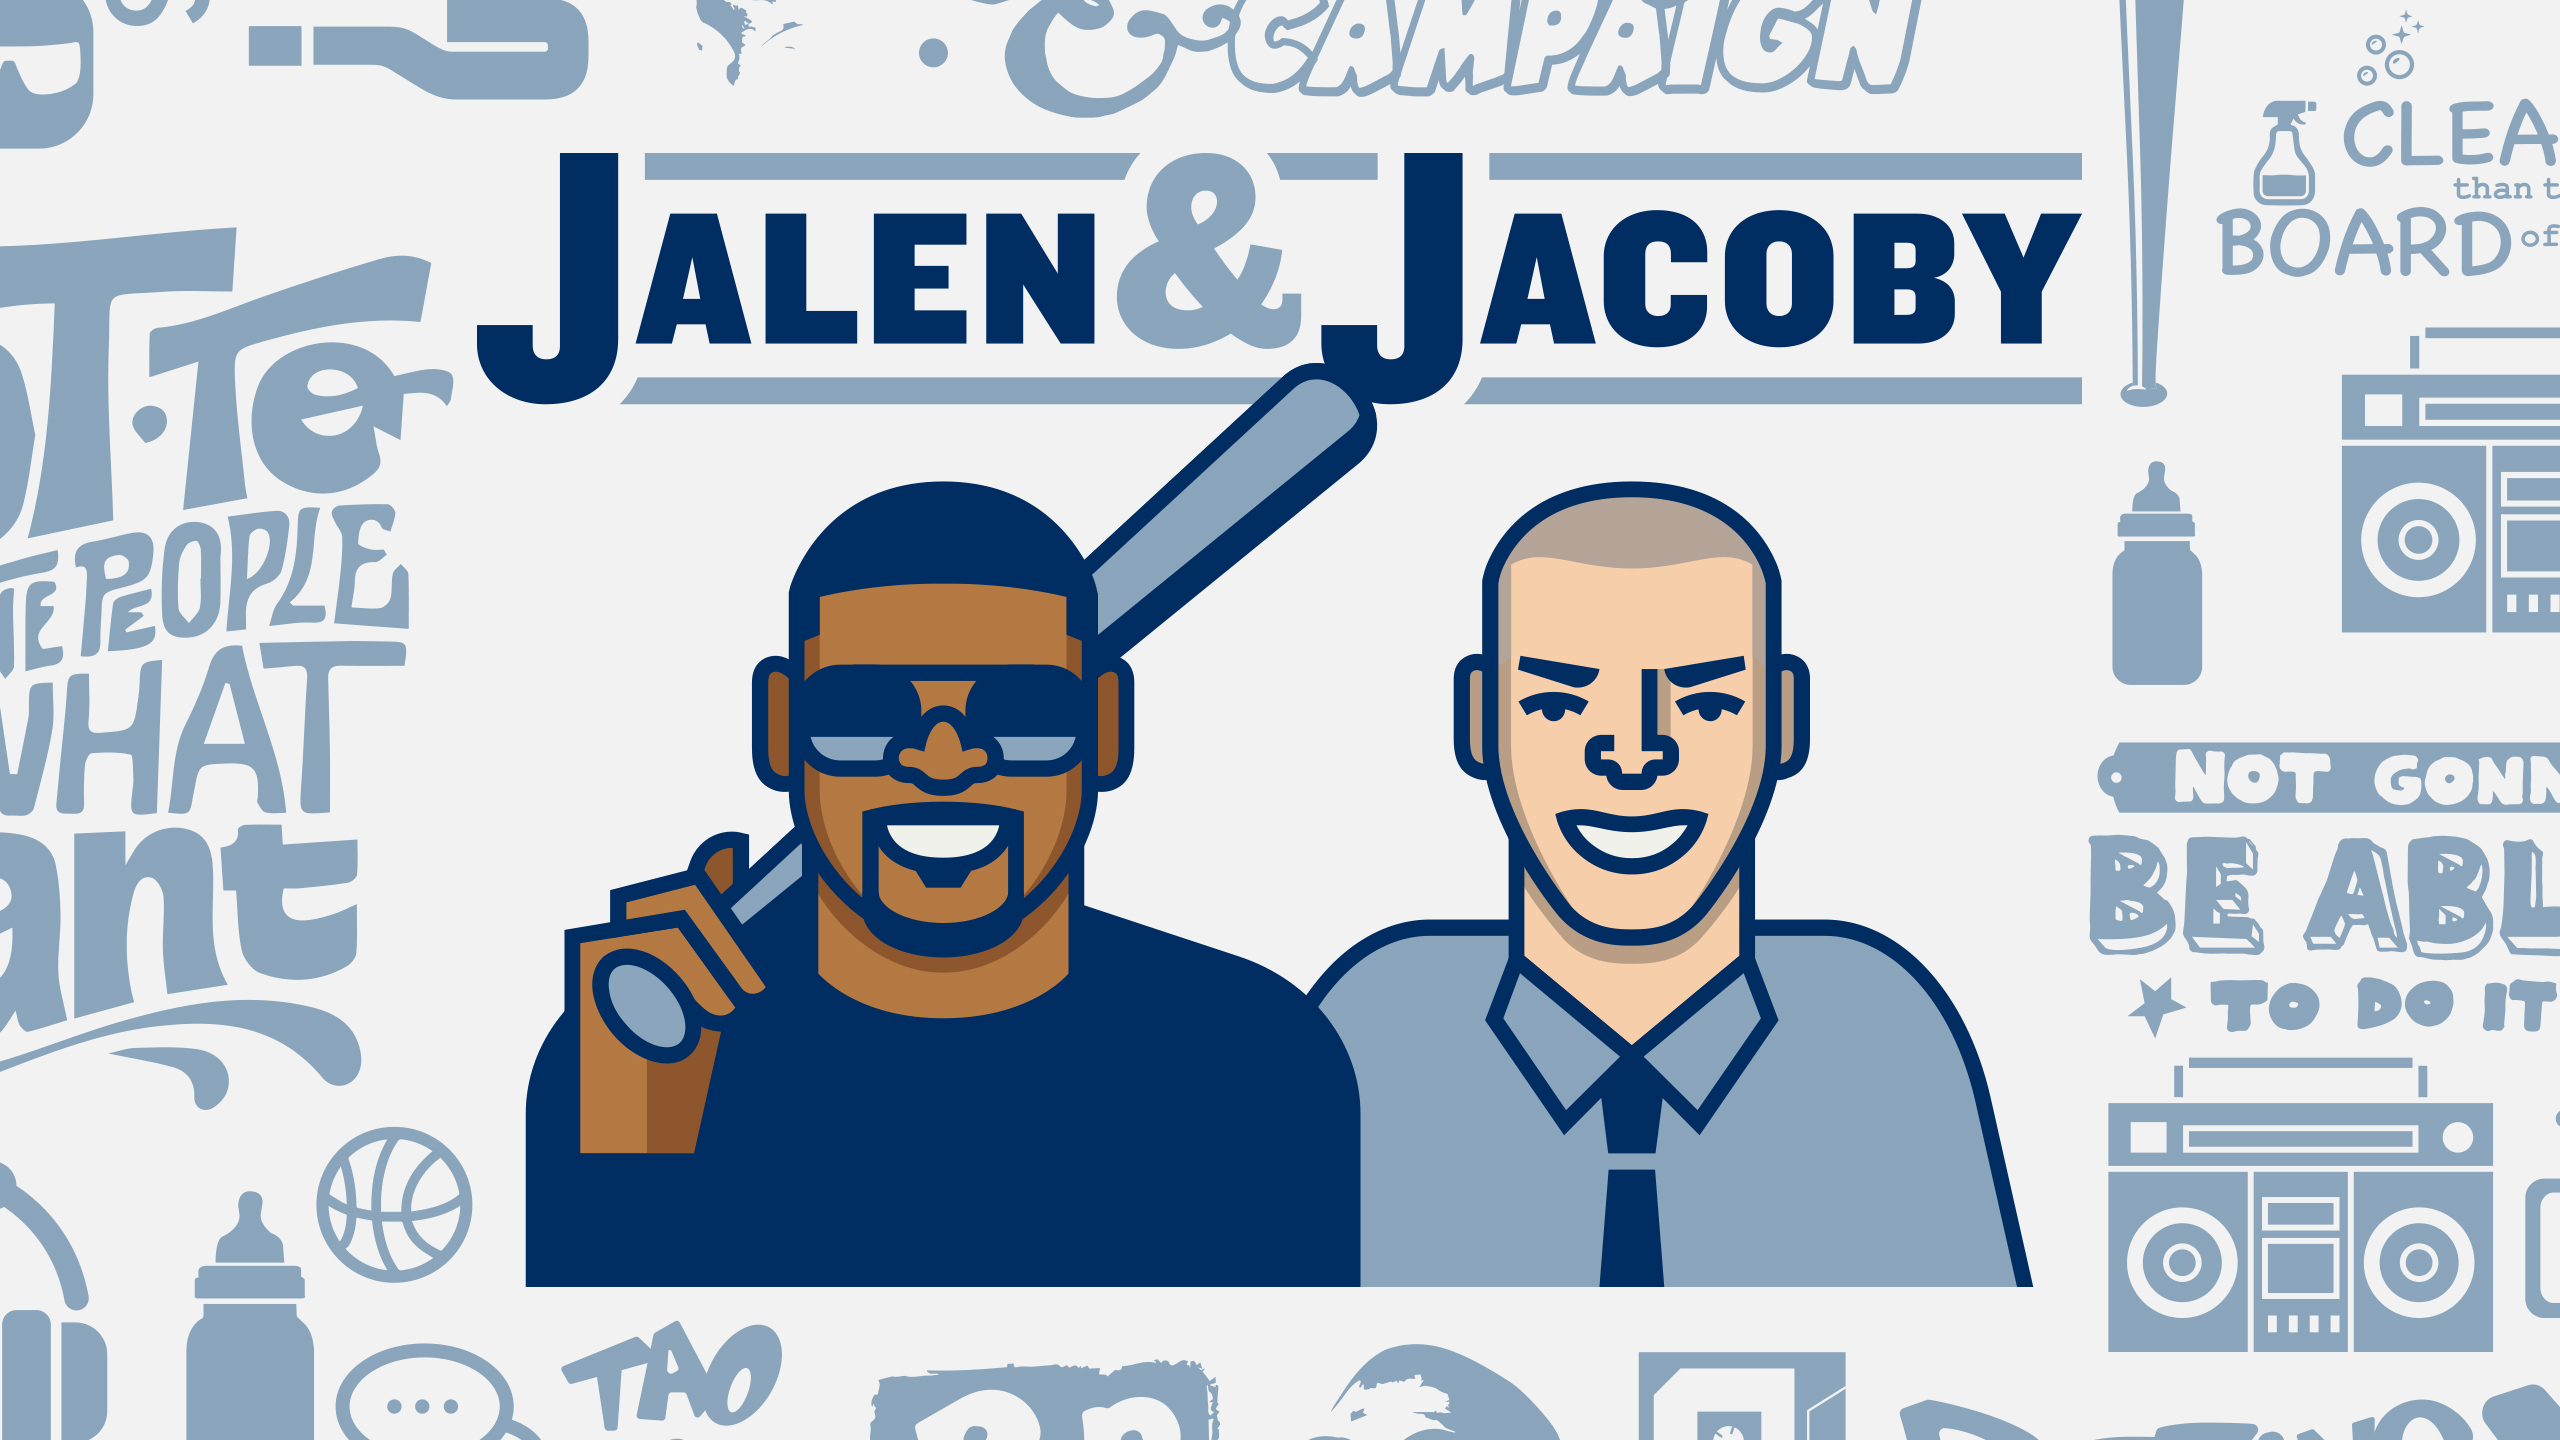 Wed, 8/15 - Jalen & Jacoby